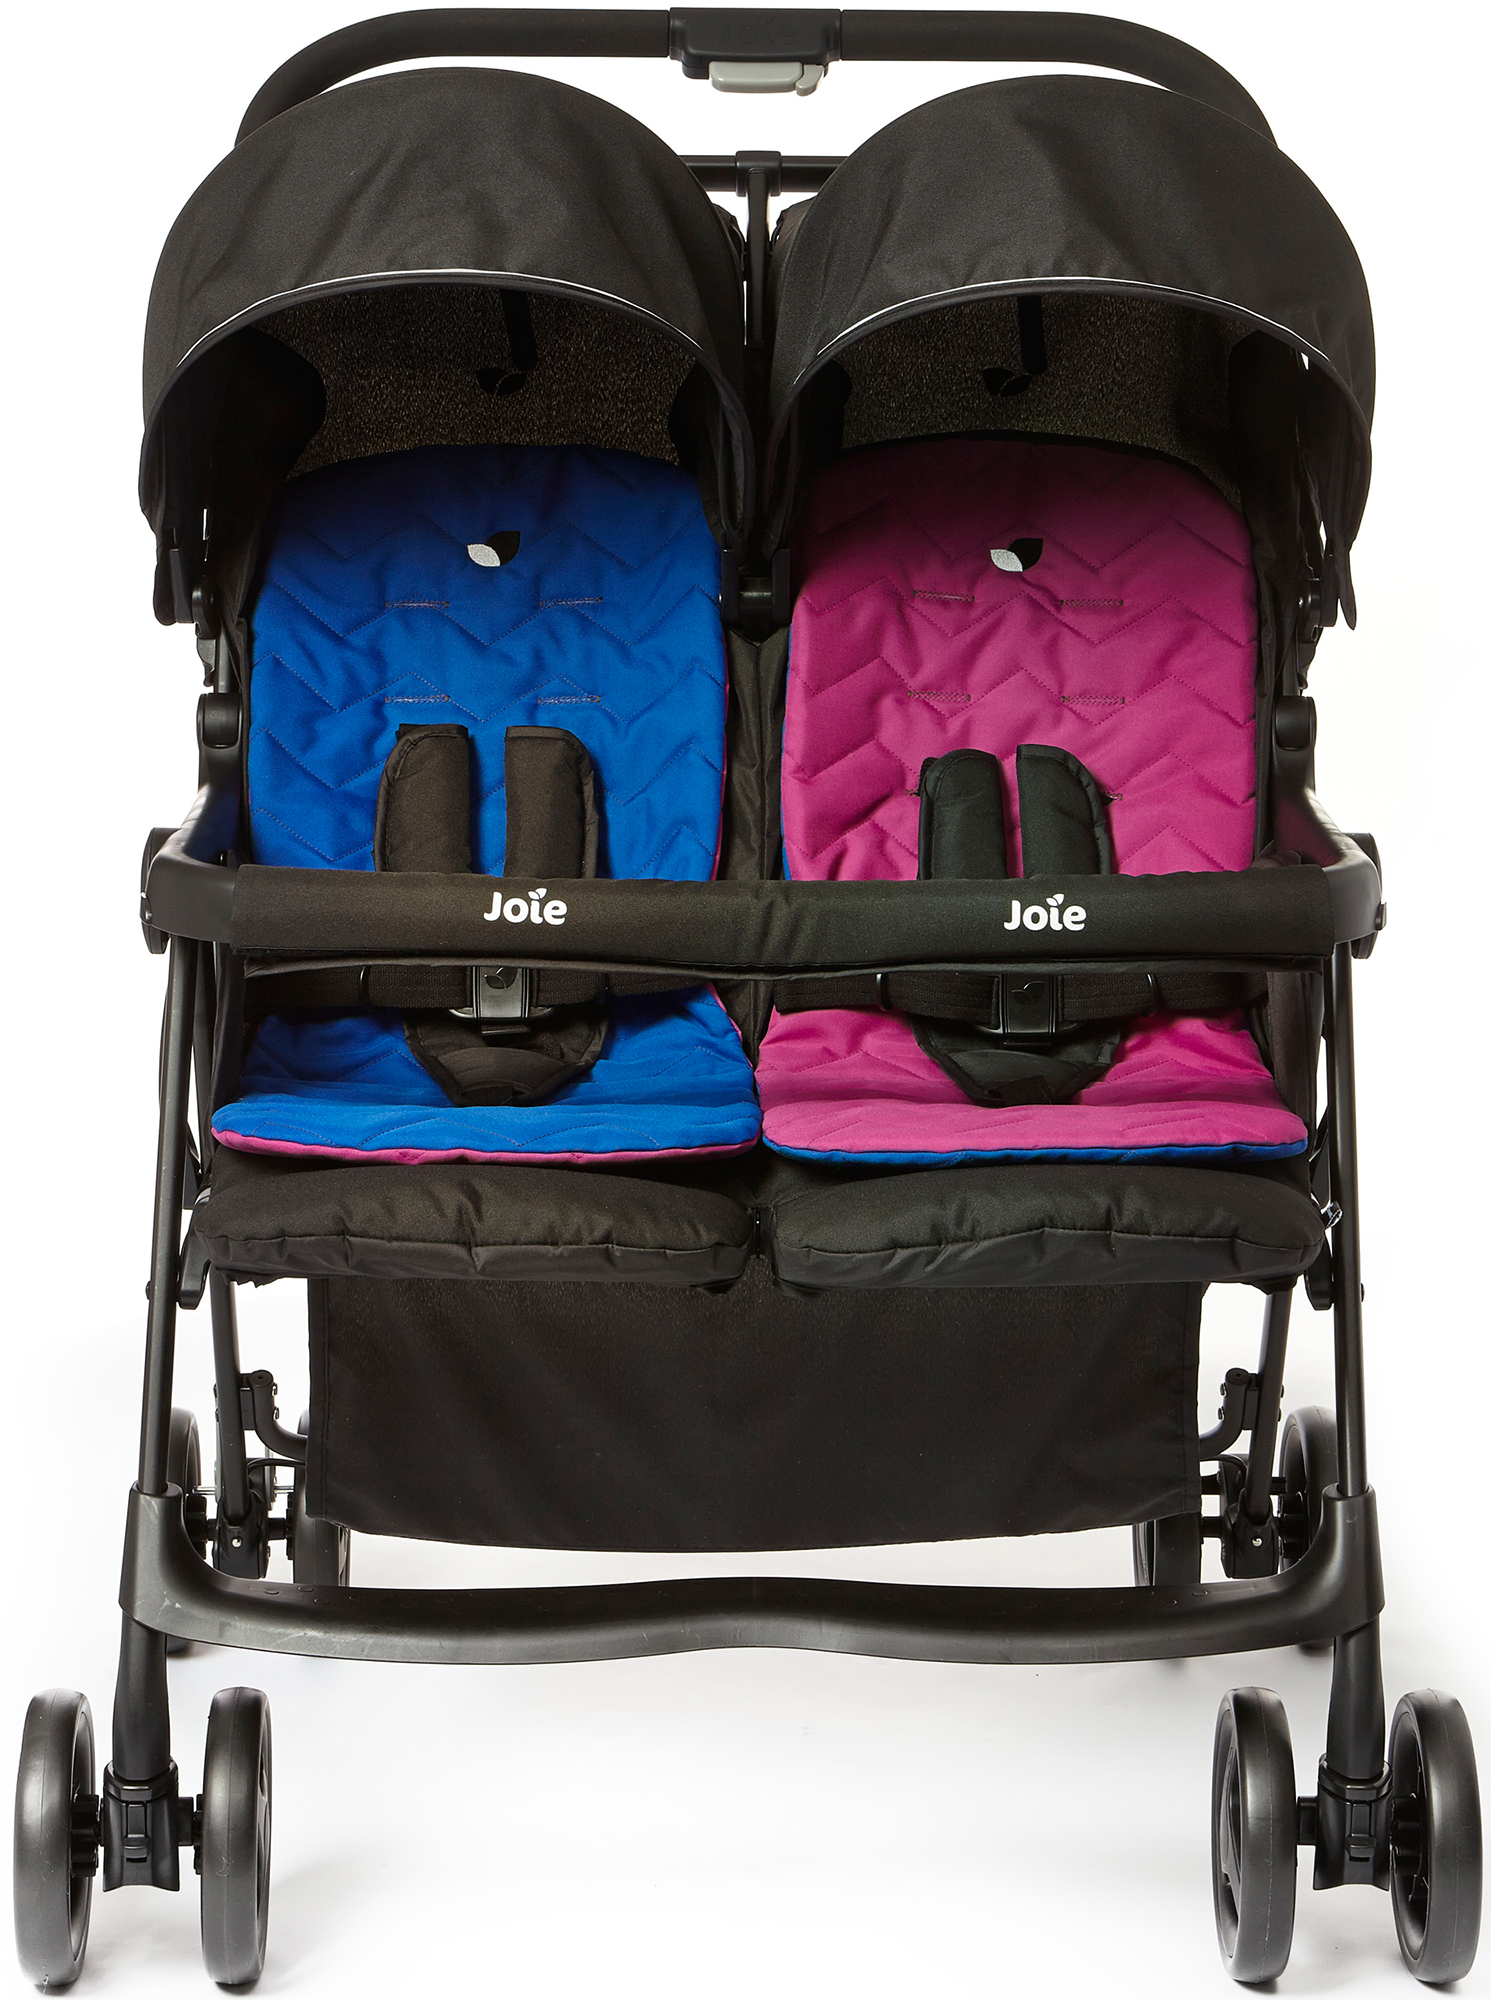 joie aire twin stroller pink blue double buggy baby. Black Bedroom Furniture Sets. Home Design Ideas